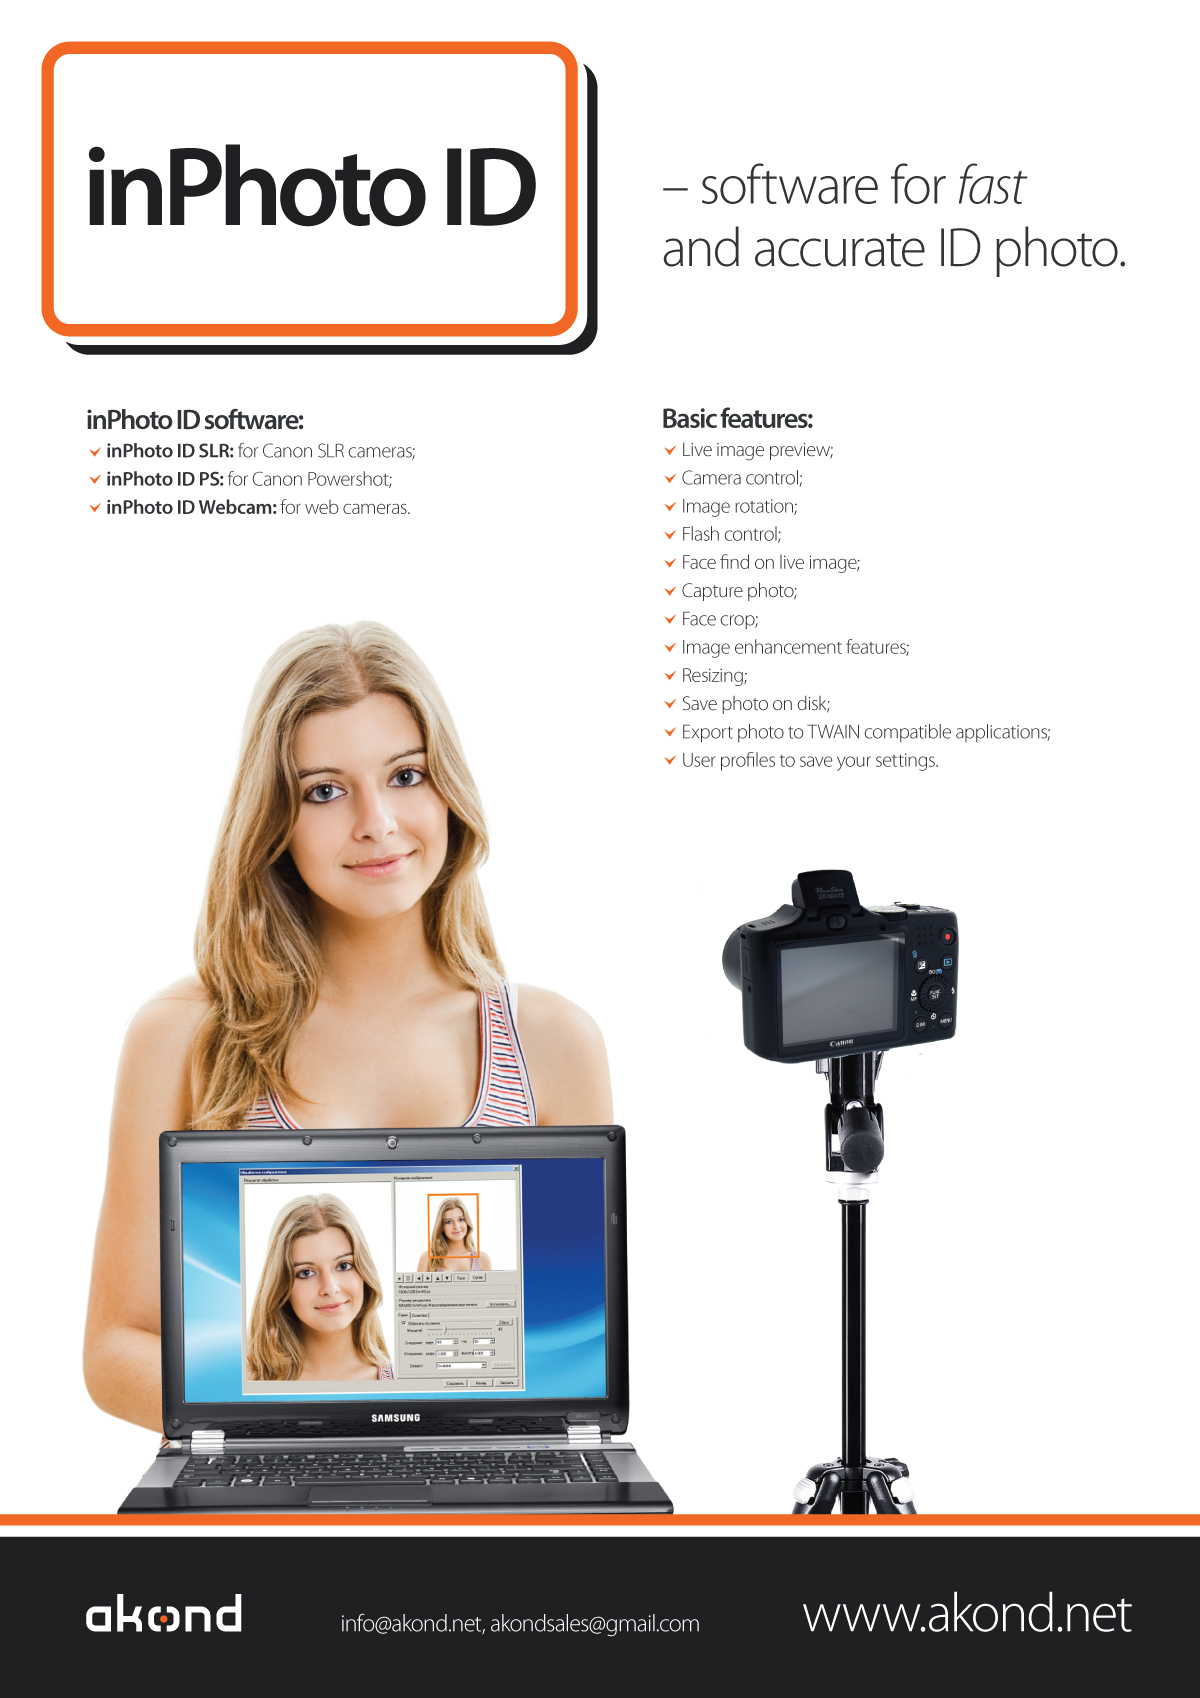 inPhoto ID Webcam - ID photo with web camera